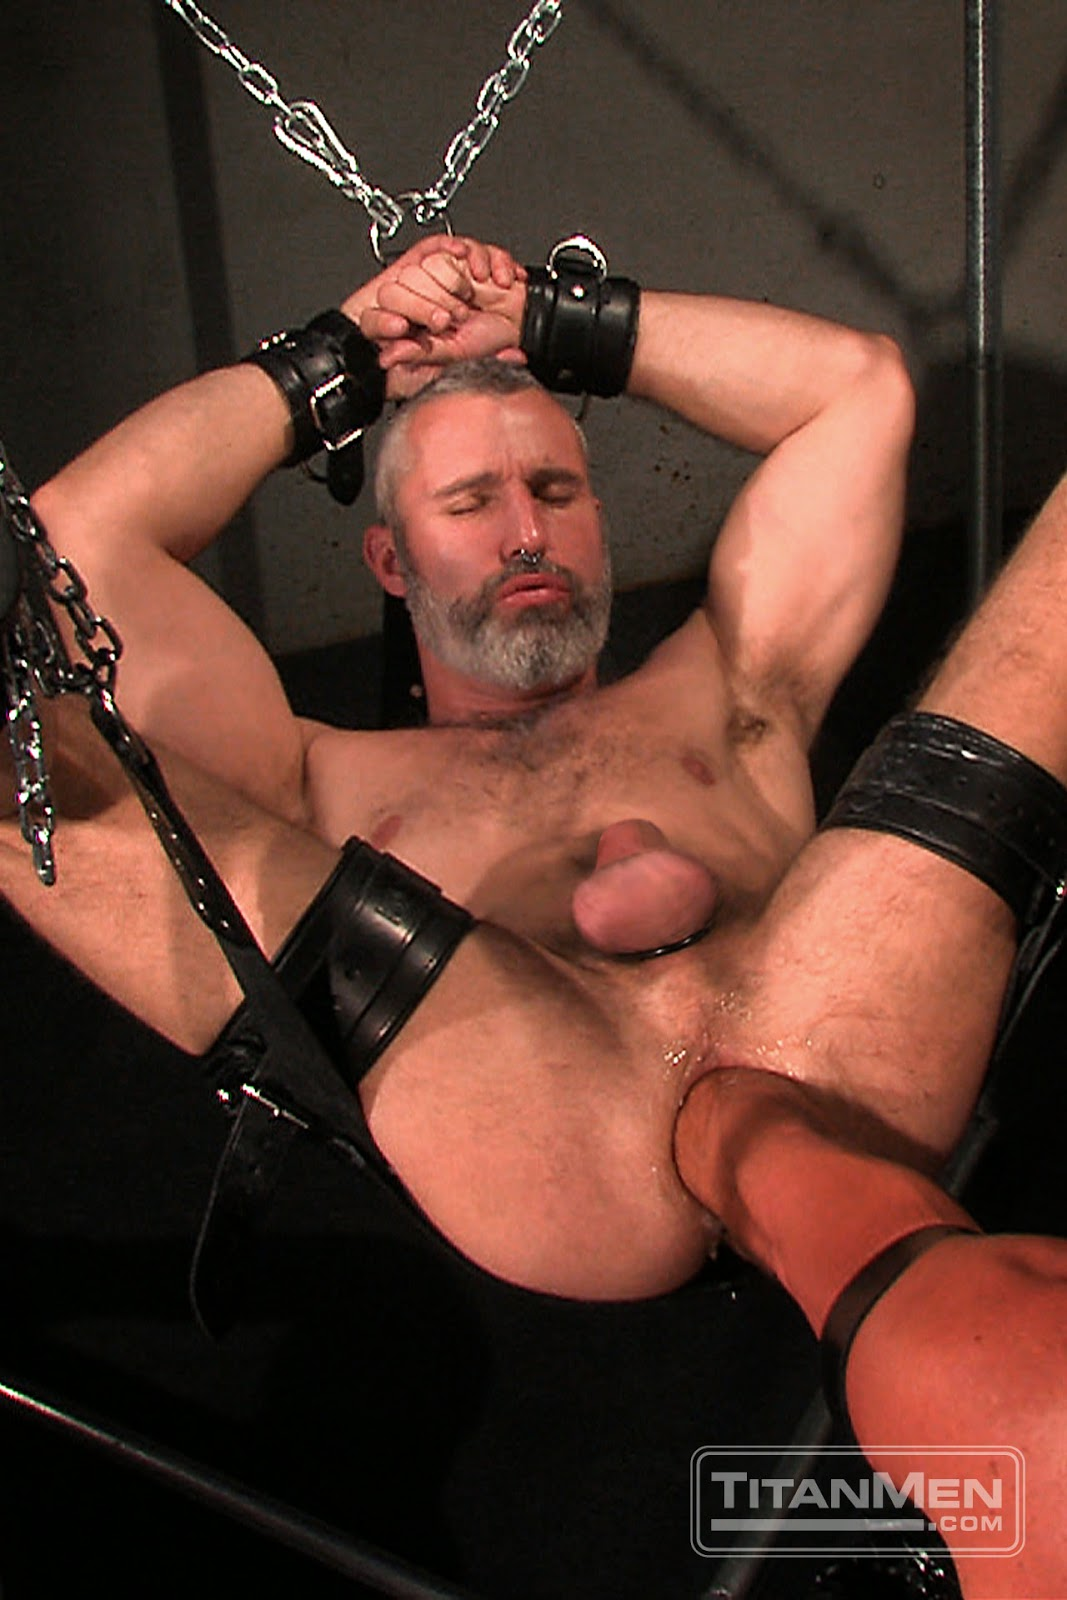 Deep throat frenzy